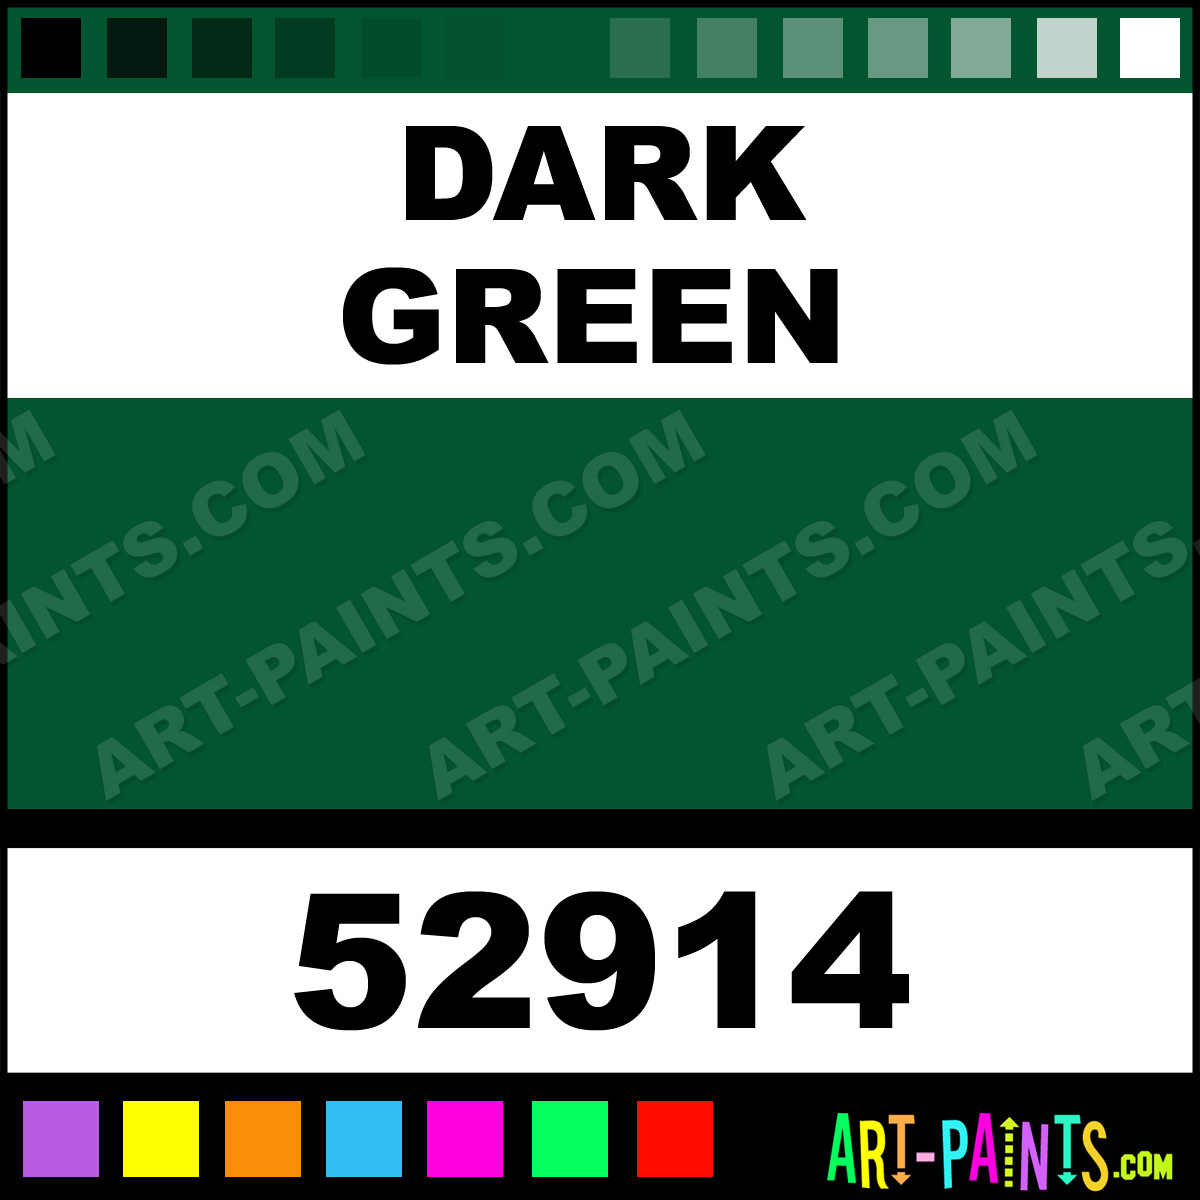 Dark green car paint colors - Dark Green Paint